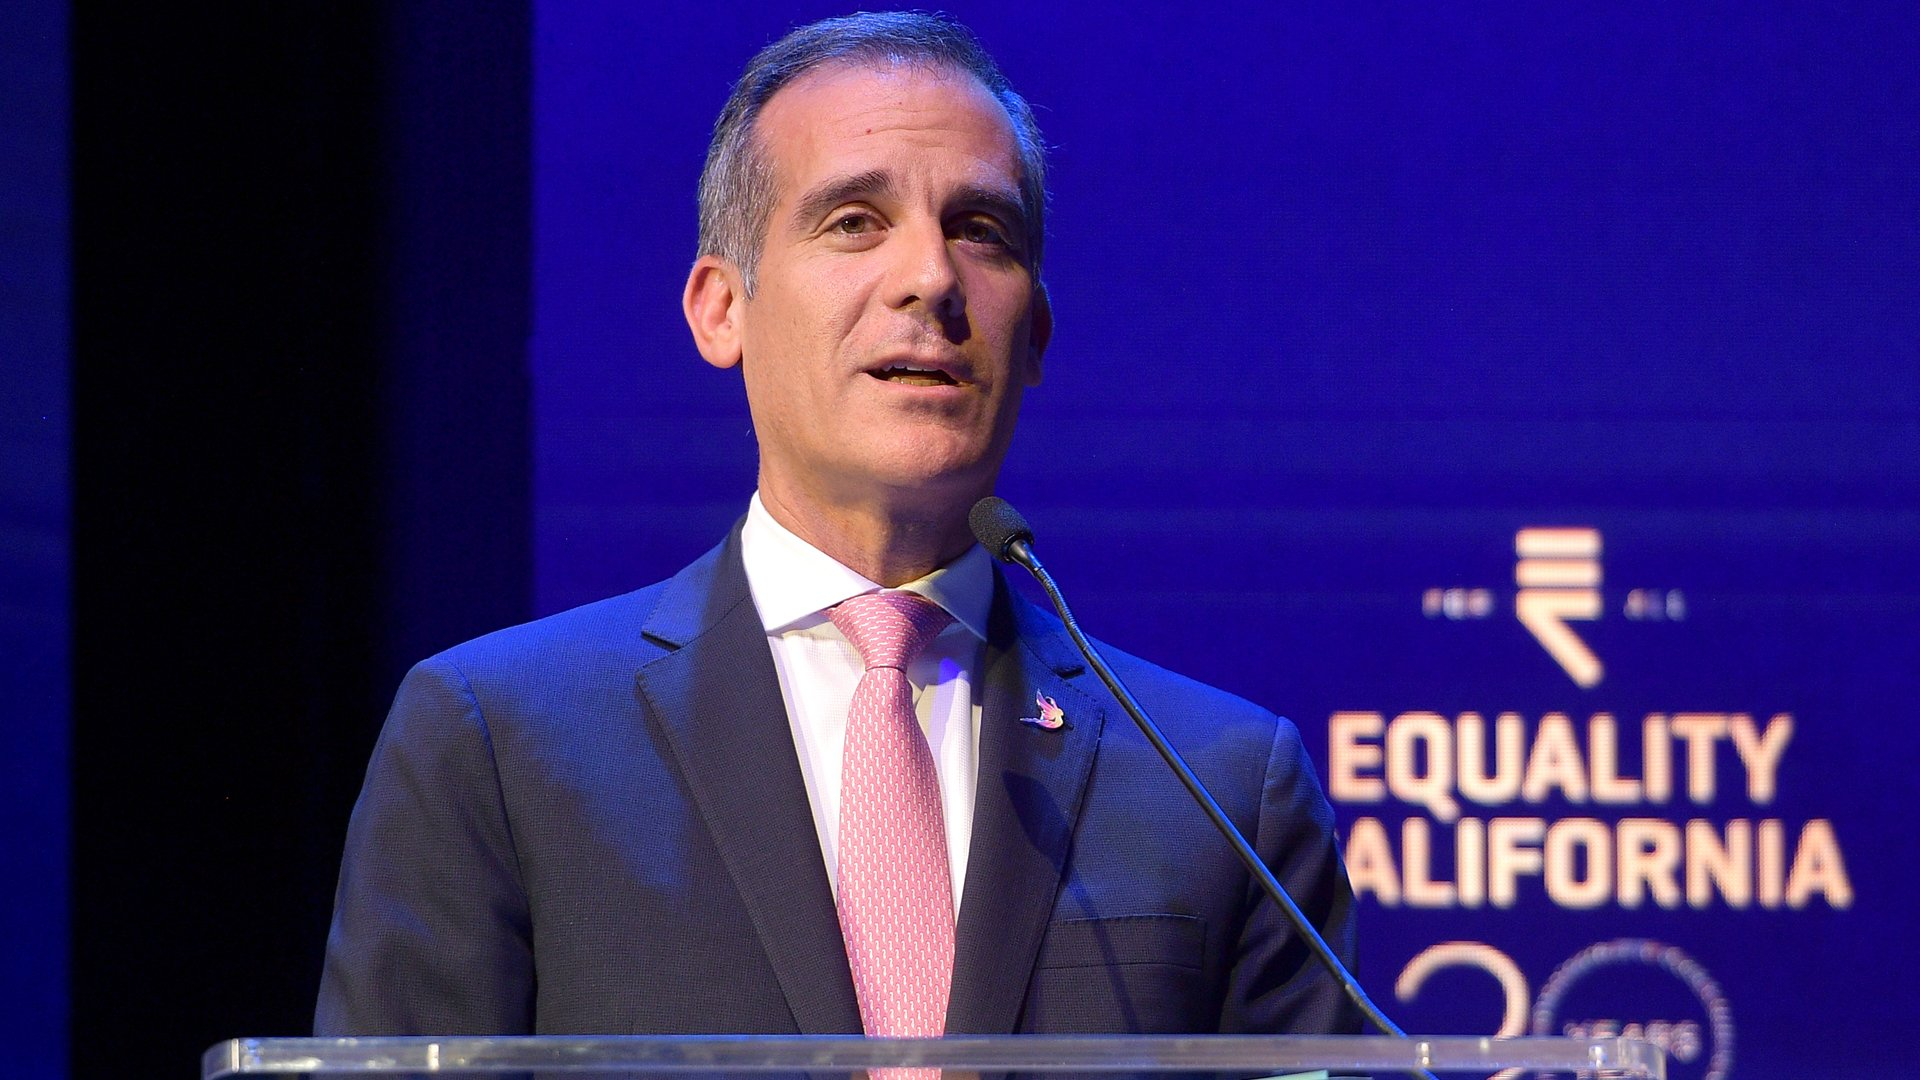 Eric Garcetti speaks onstage during Equality California's Special 20th Anniversary Los Angeles Equality Awards on Sept. 28, 2019. (Credit: Matt Winkelmeyer/Getty Images for Equality California)